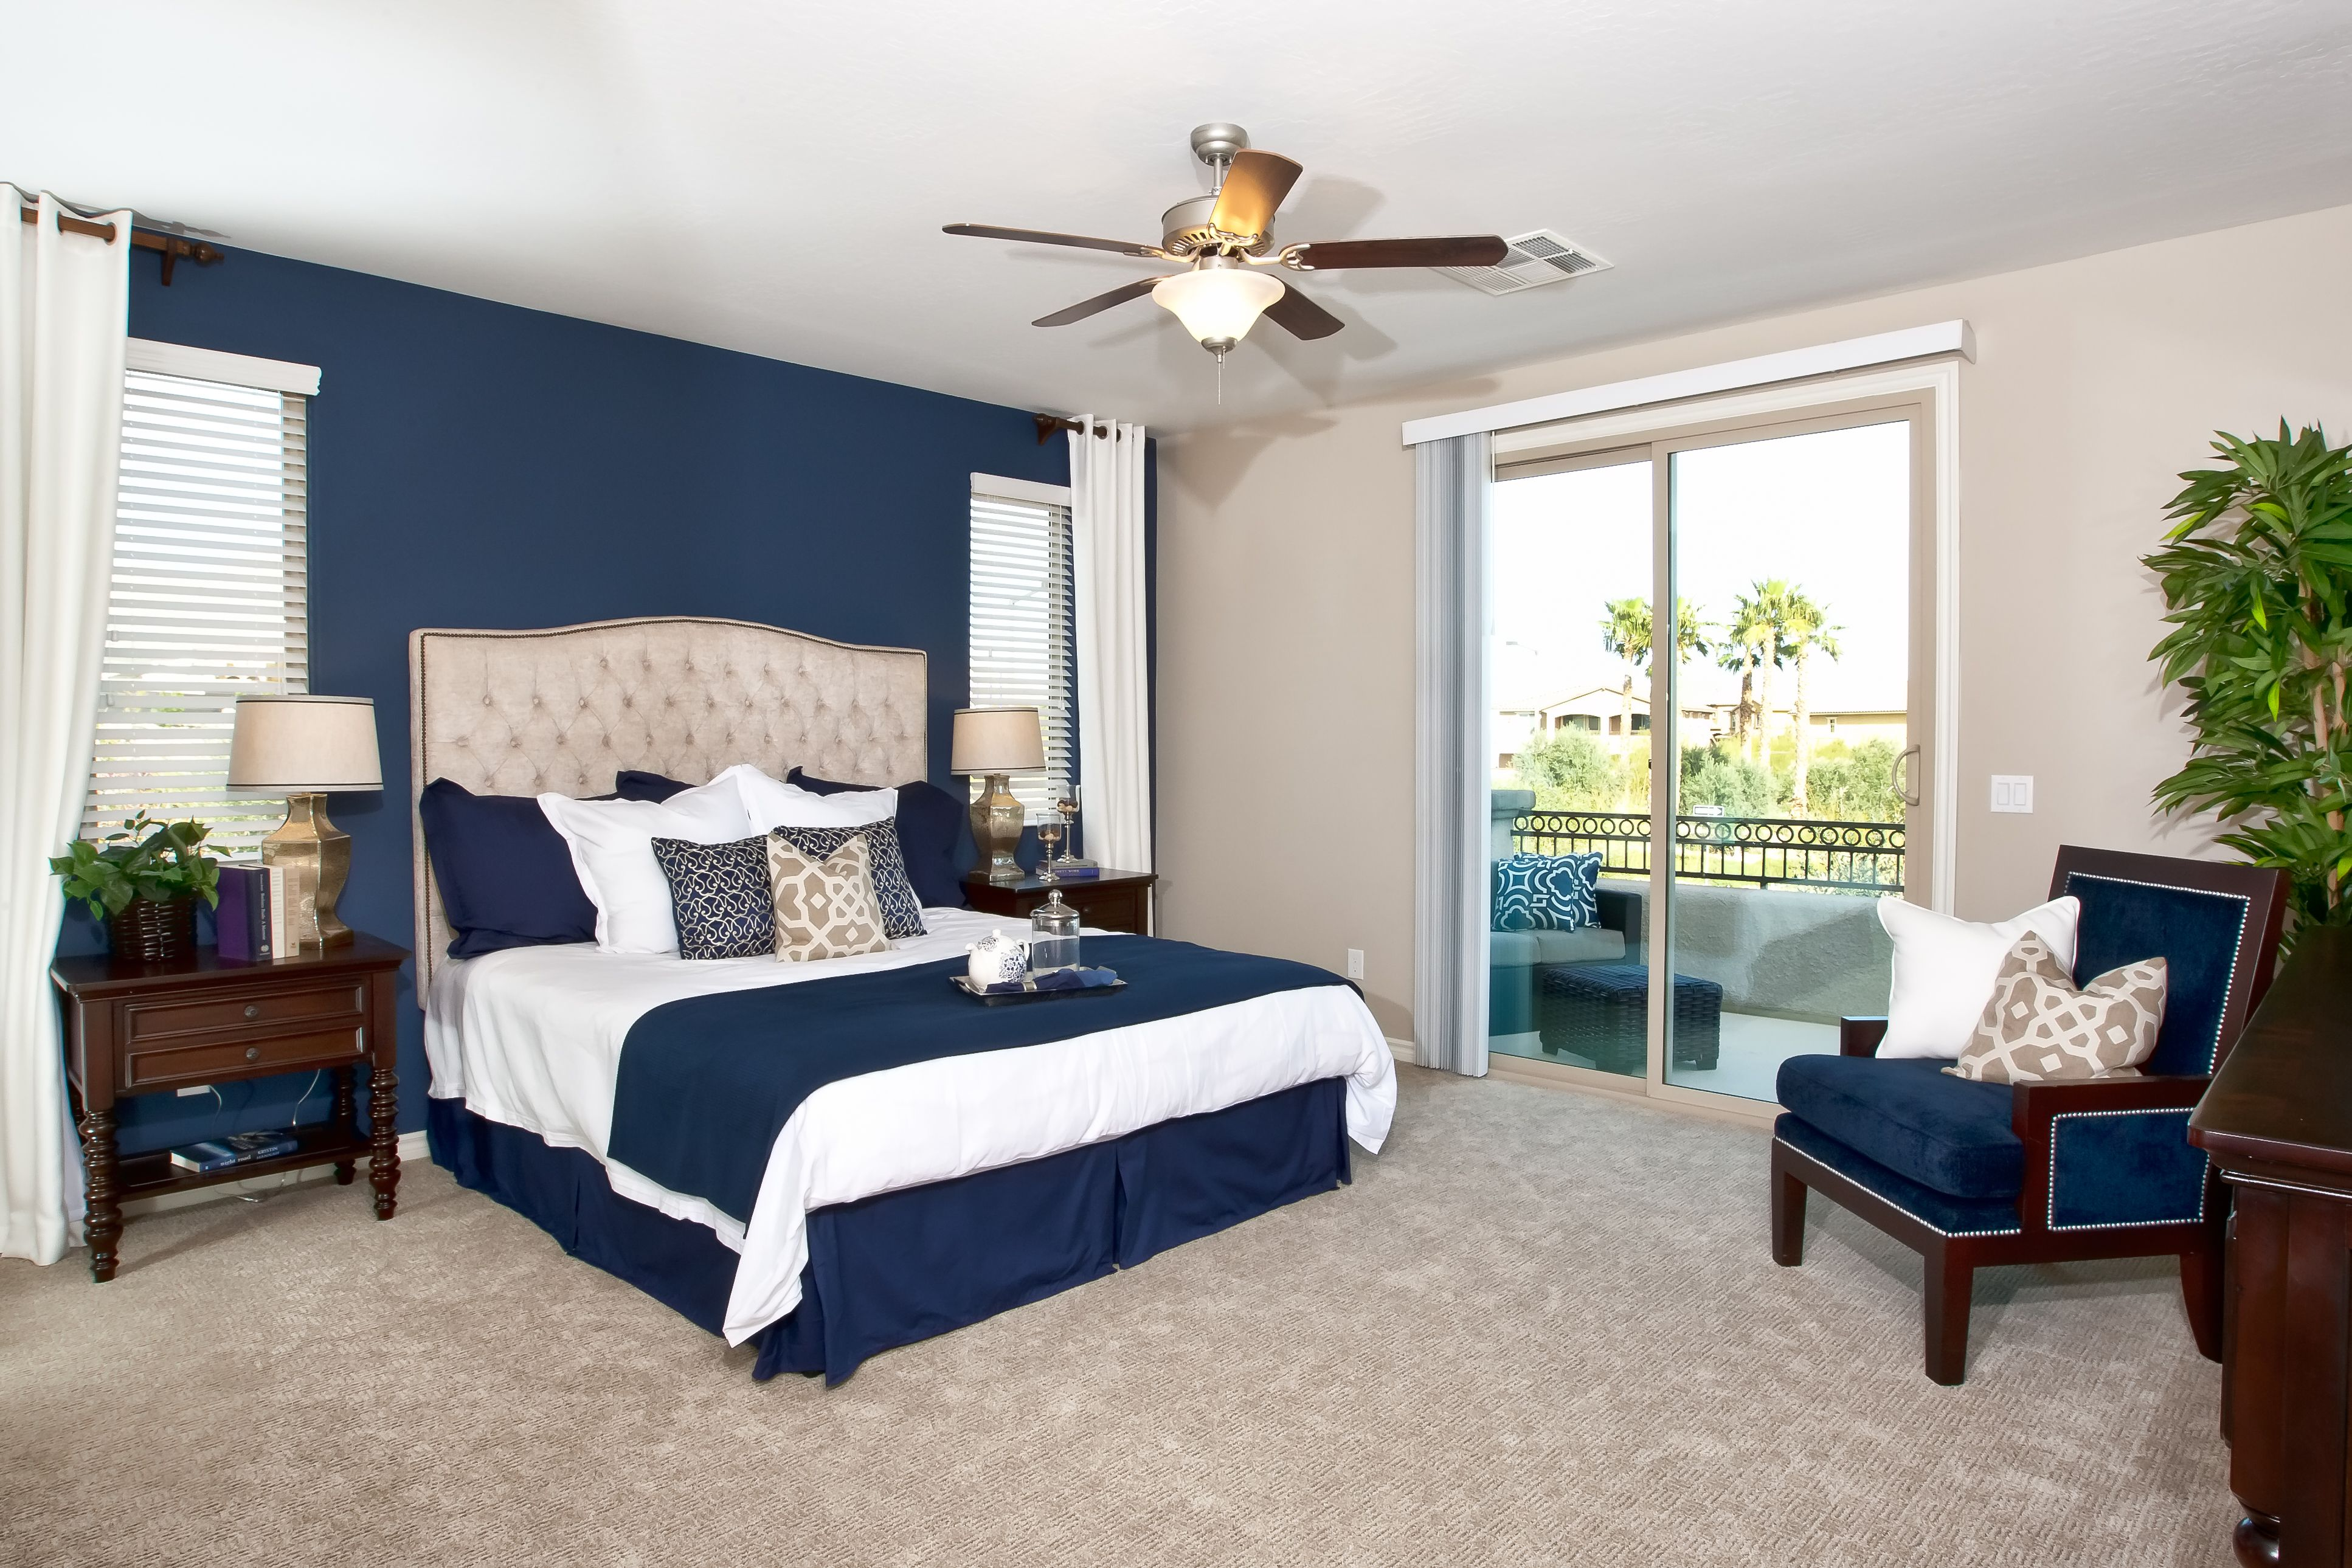 Like cool colors? Check out this bedroom at our Catalina